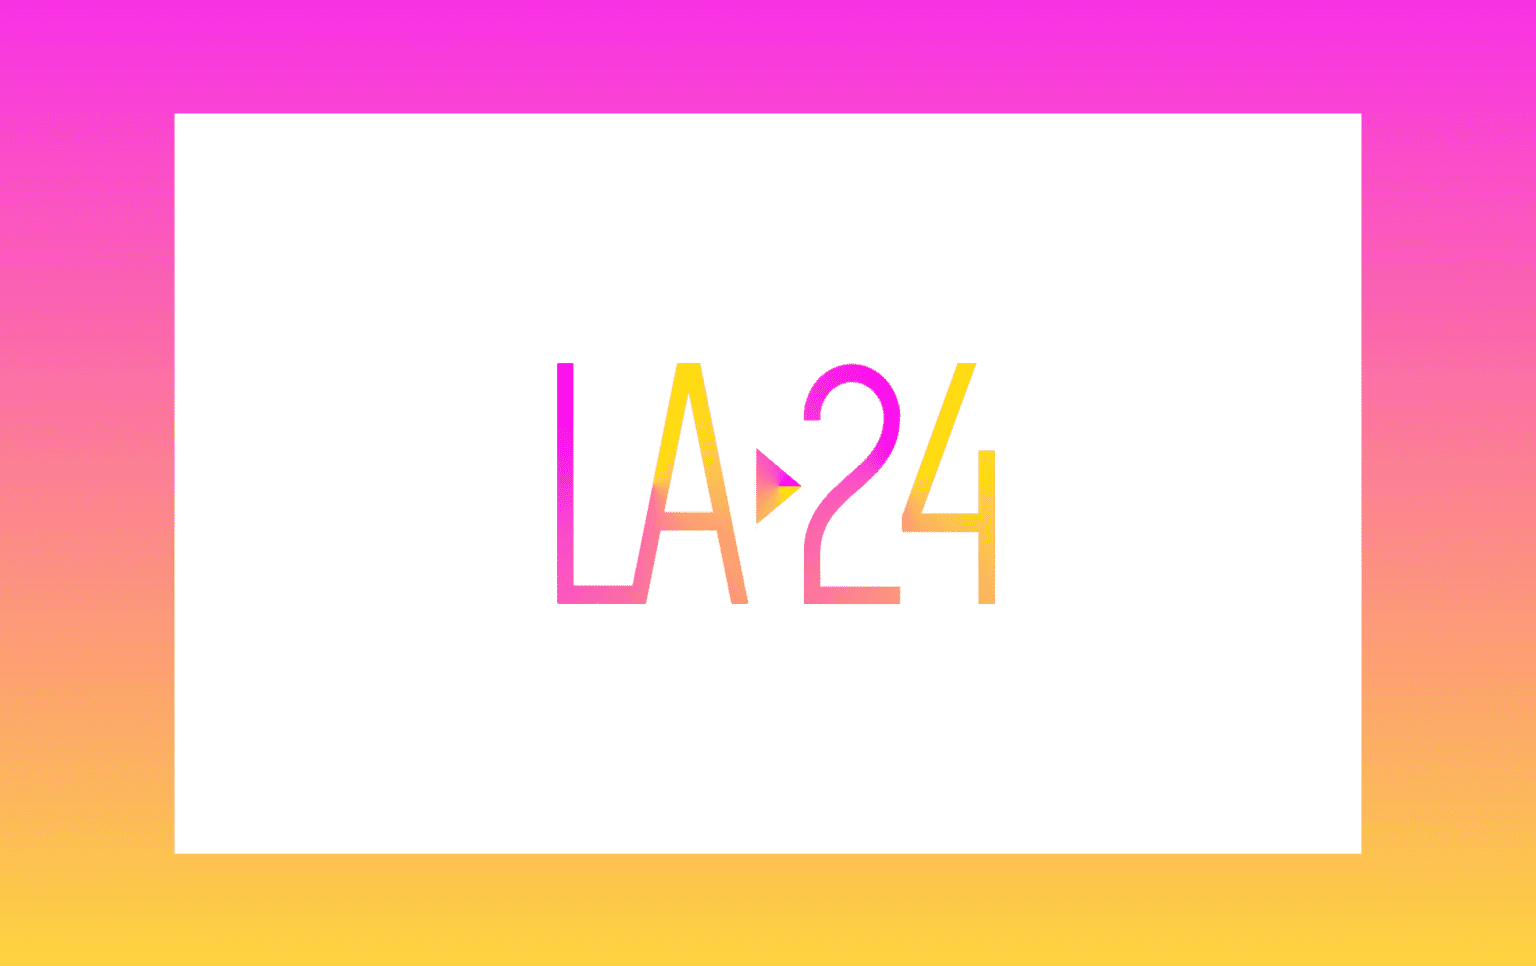 Los Angeles National Bid for the 2024 Olympics